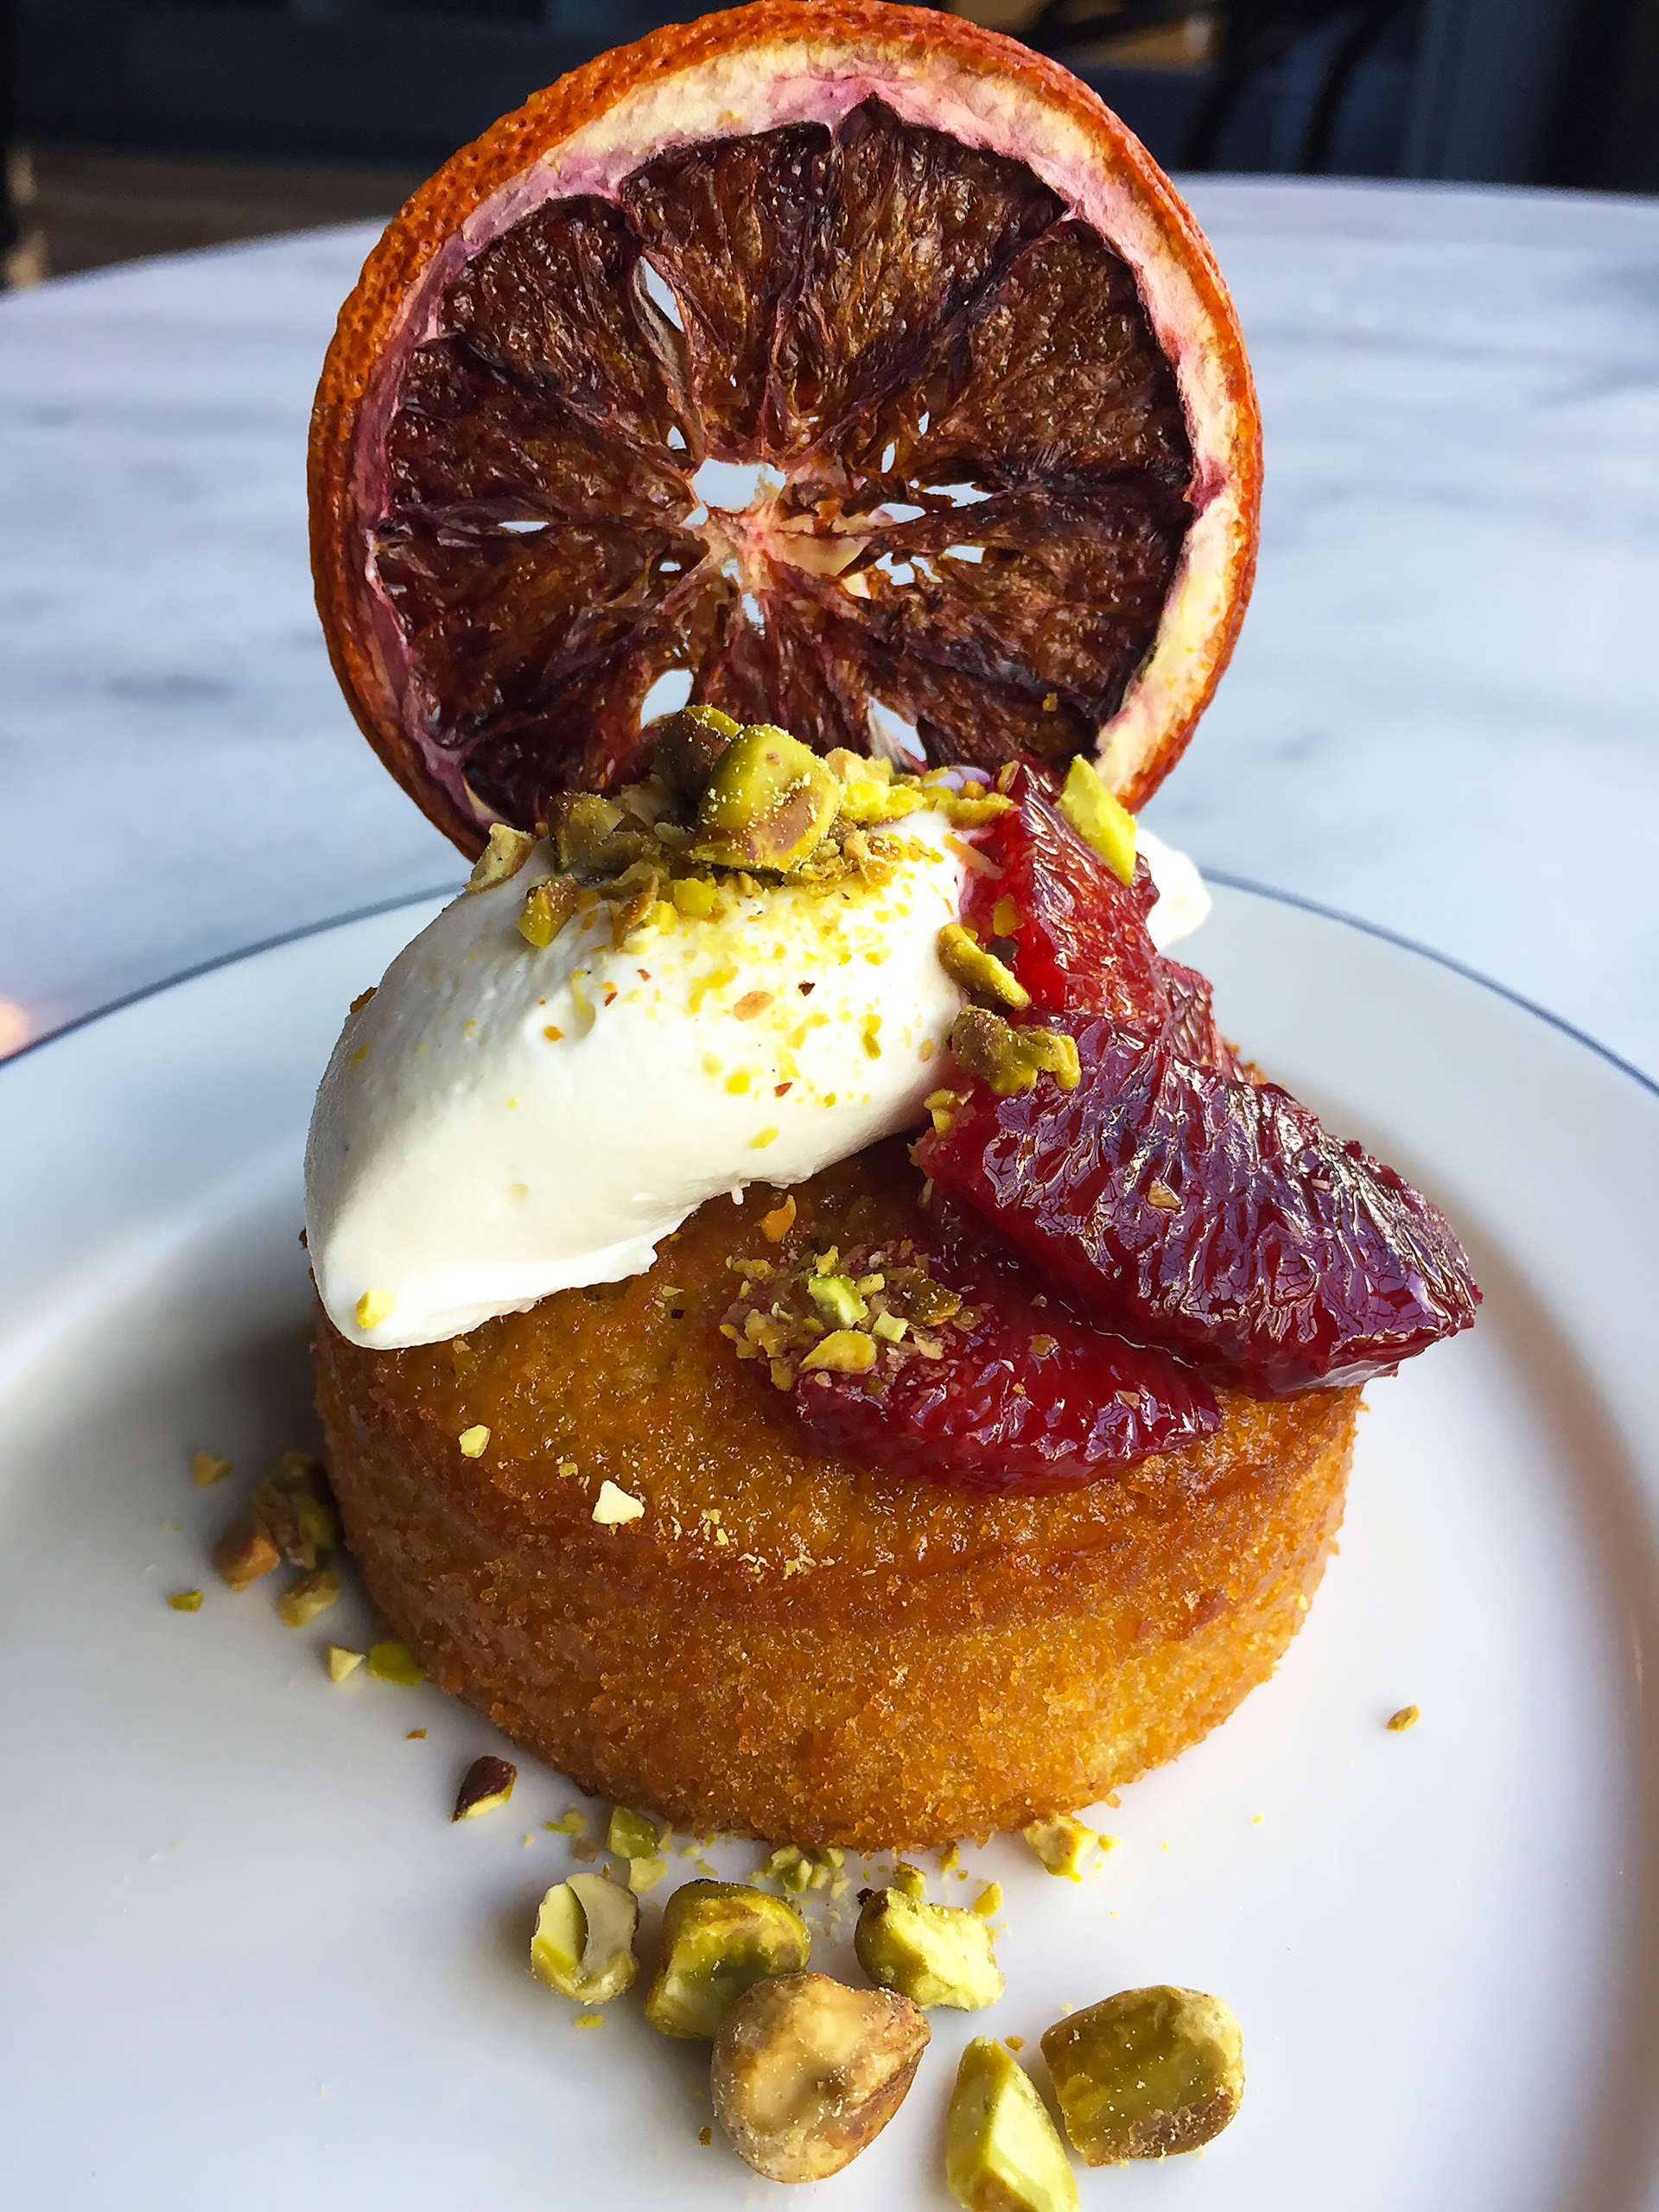 Olive oil cake with blood oranges and pistachios